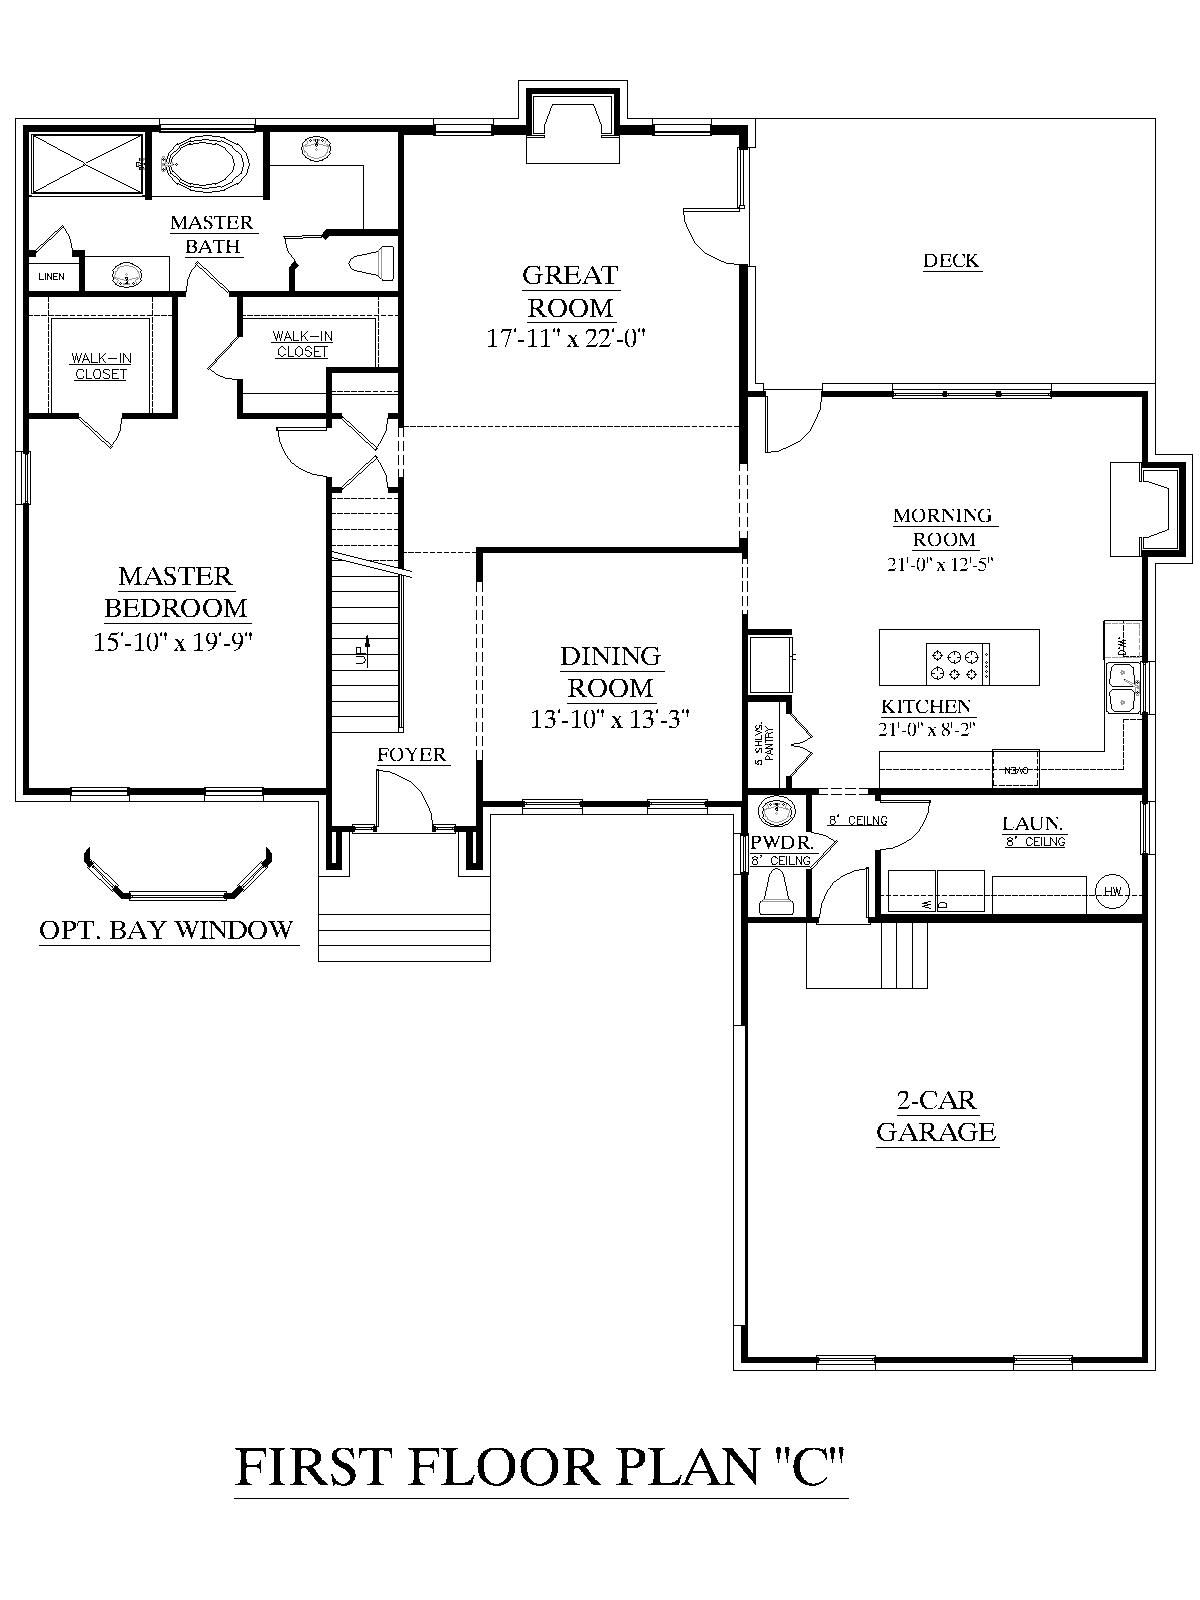 House Plan 2995 C Springdale C First Floor Traditional 2 Story House With 4 Bedrooms Master Bedroom Downstairs House Plans Floor Plans Cottage House Plans